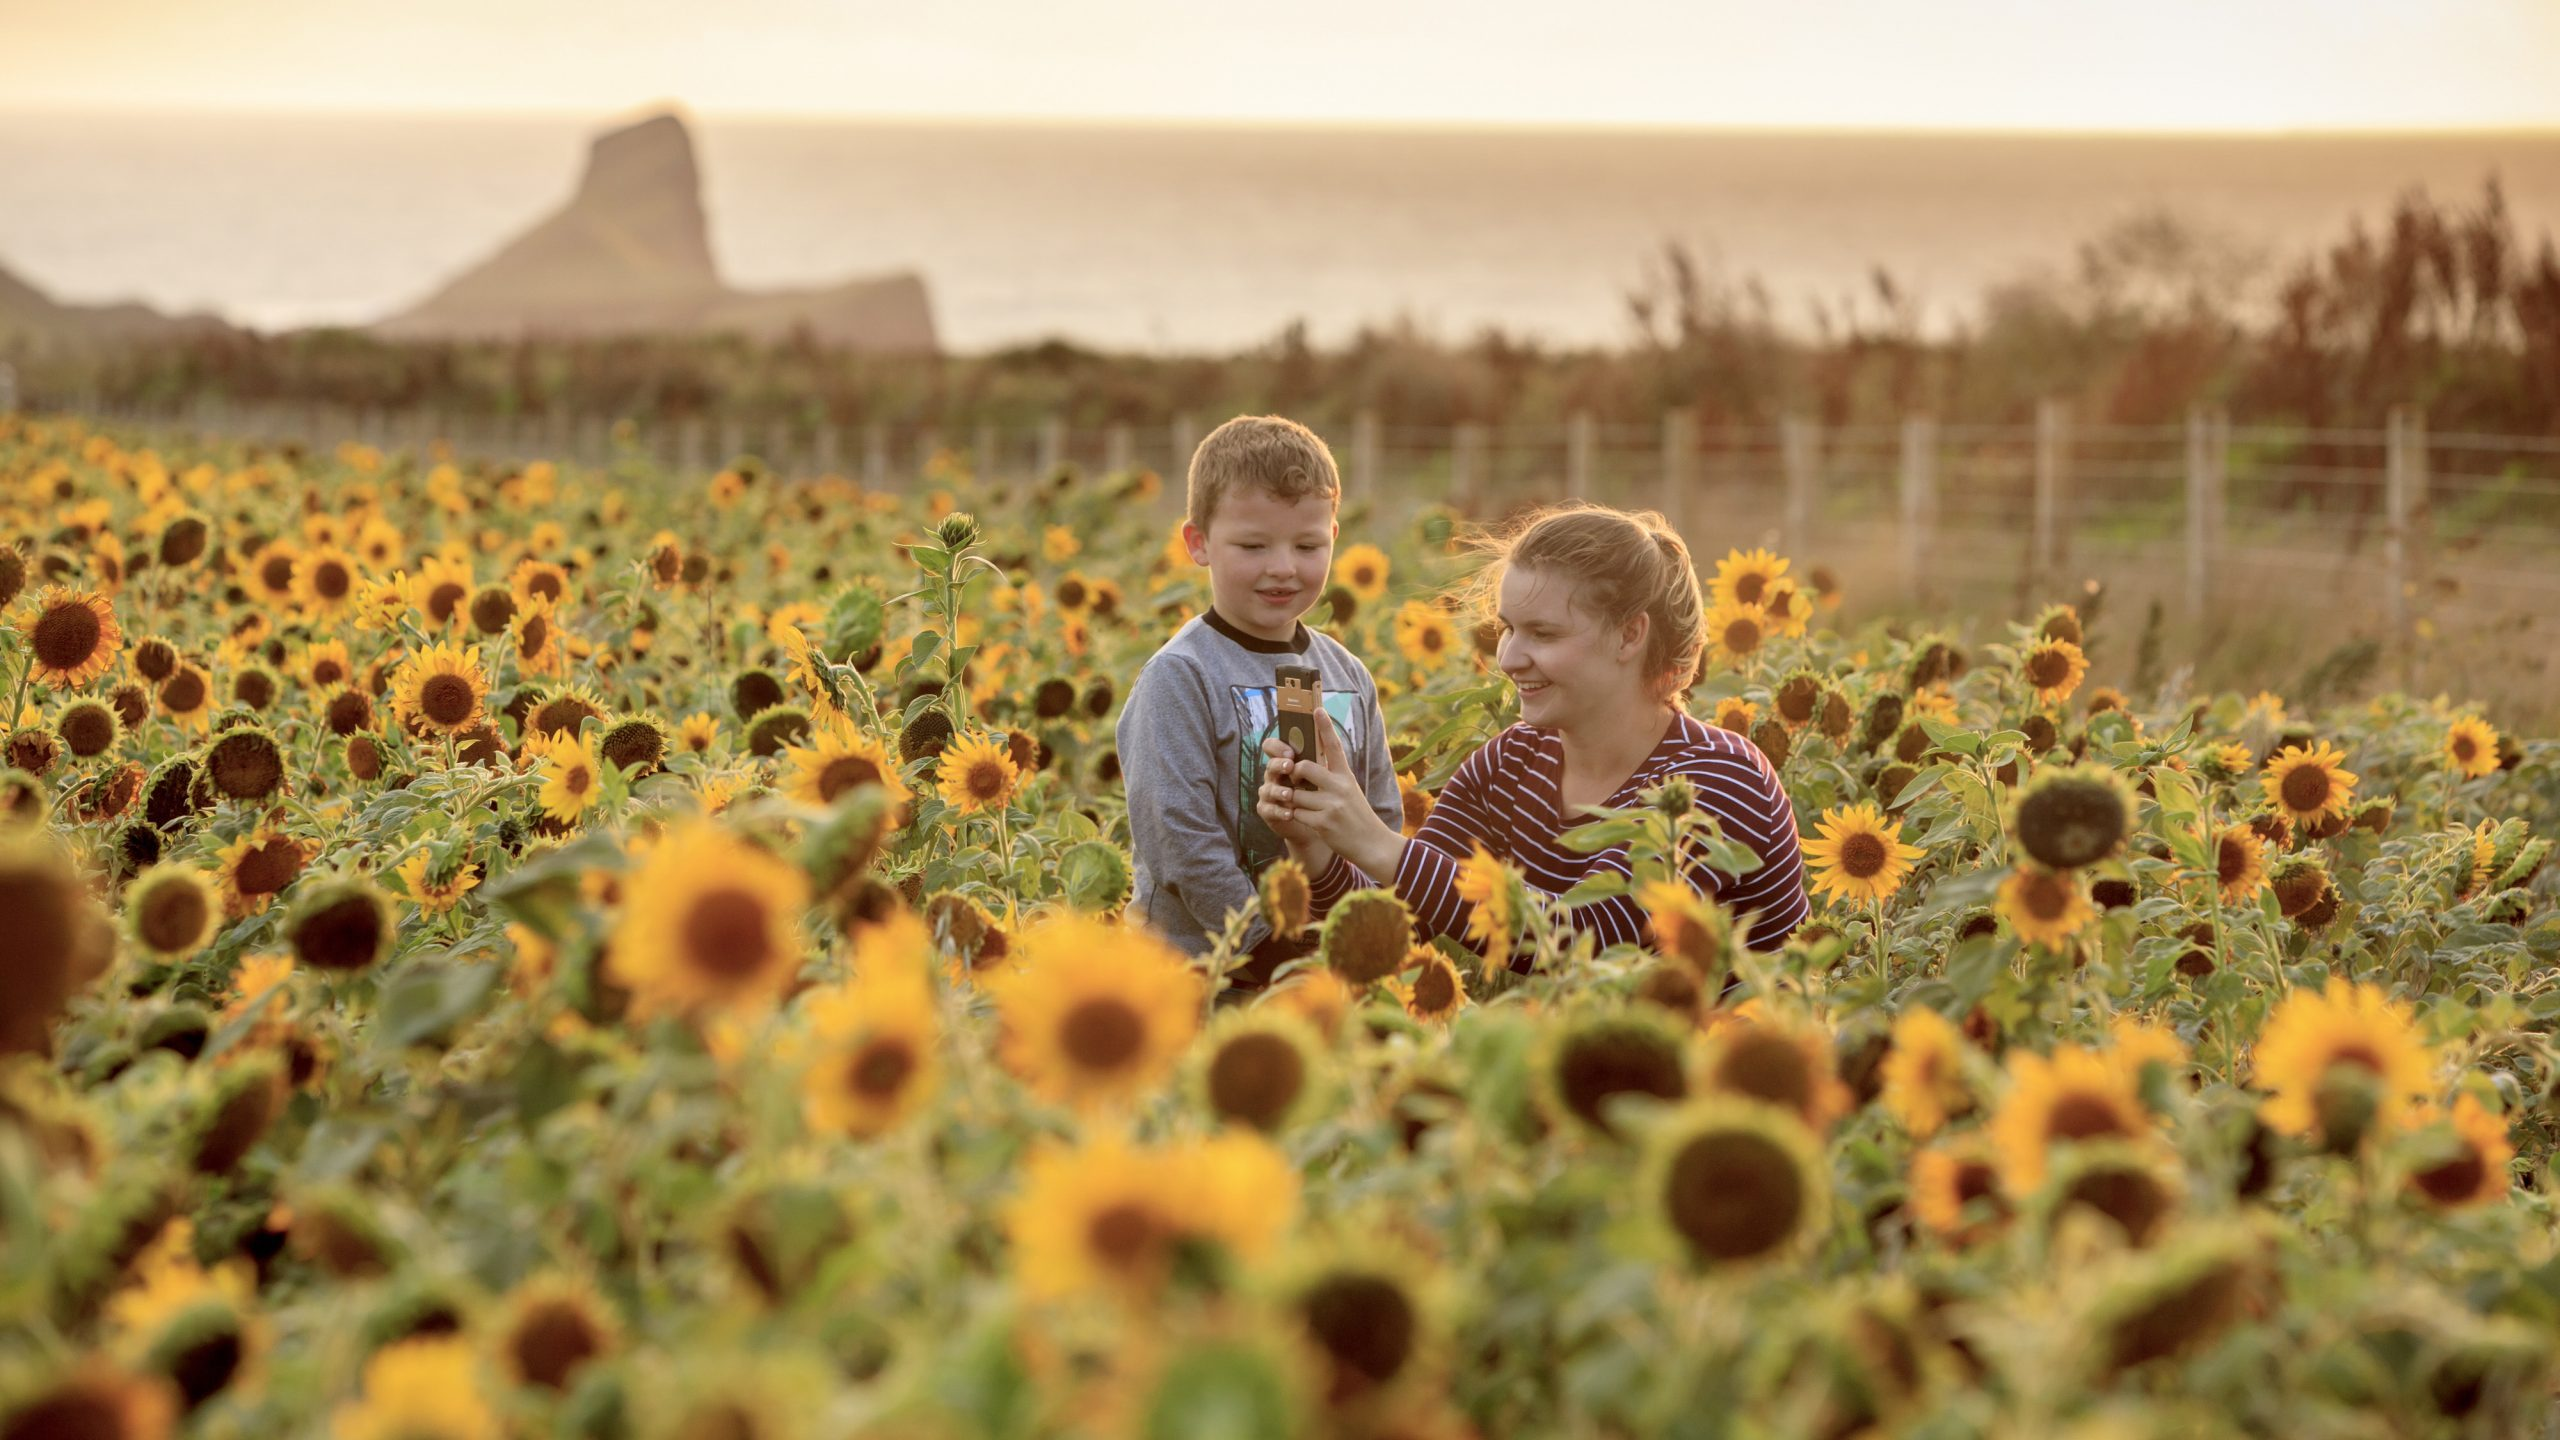 Visitors admiring the sunflowers at Rhossili and South Gower Coast, Wales